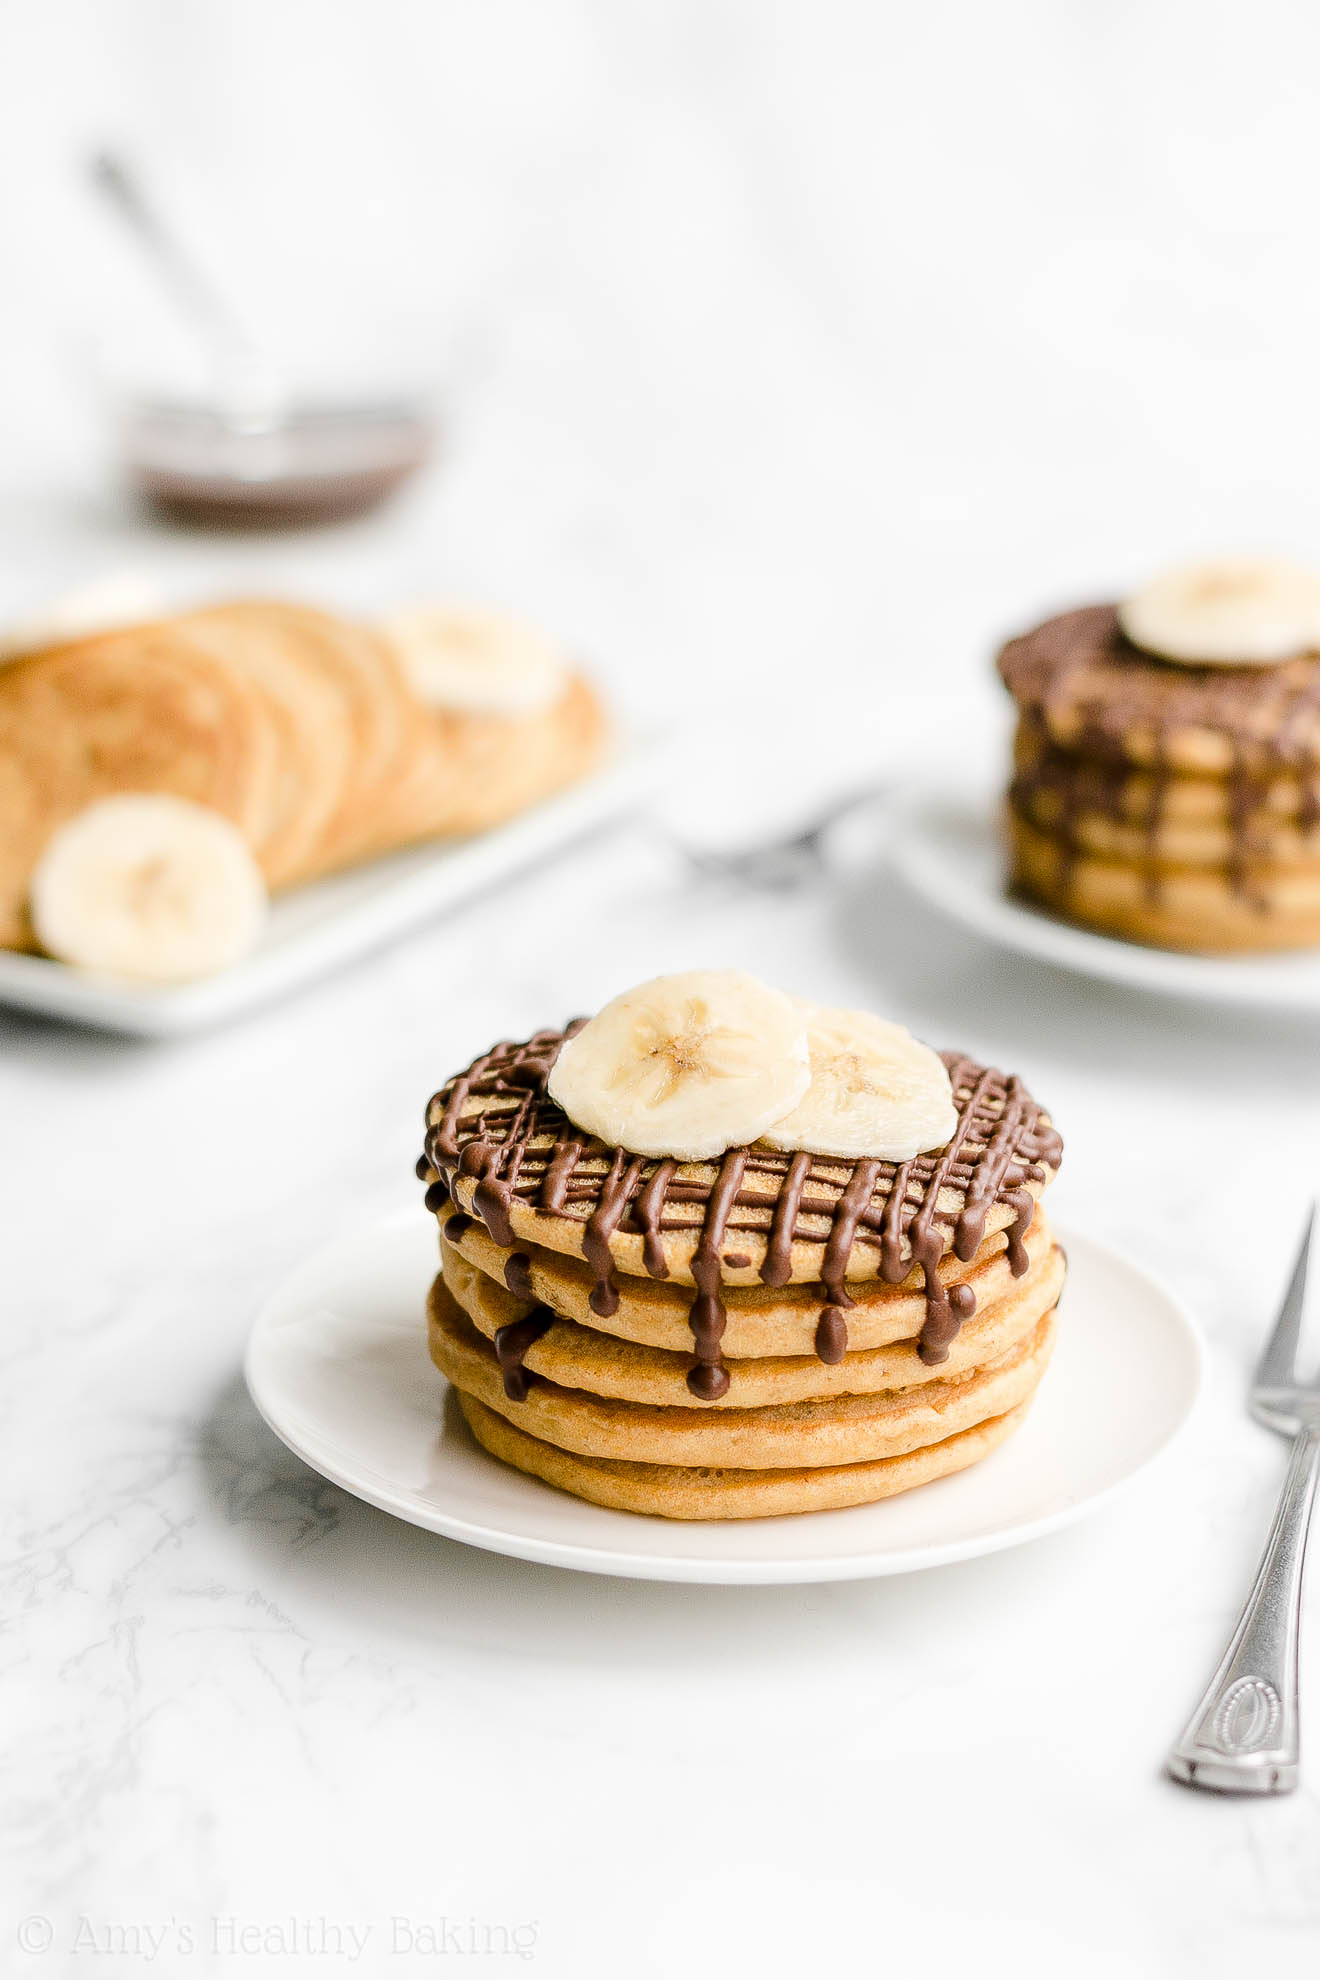 Best Simple Healthy Gluten Free Low Sugar Fluffy Banana Pancakes